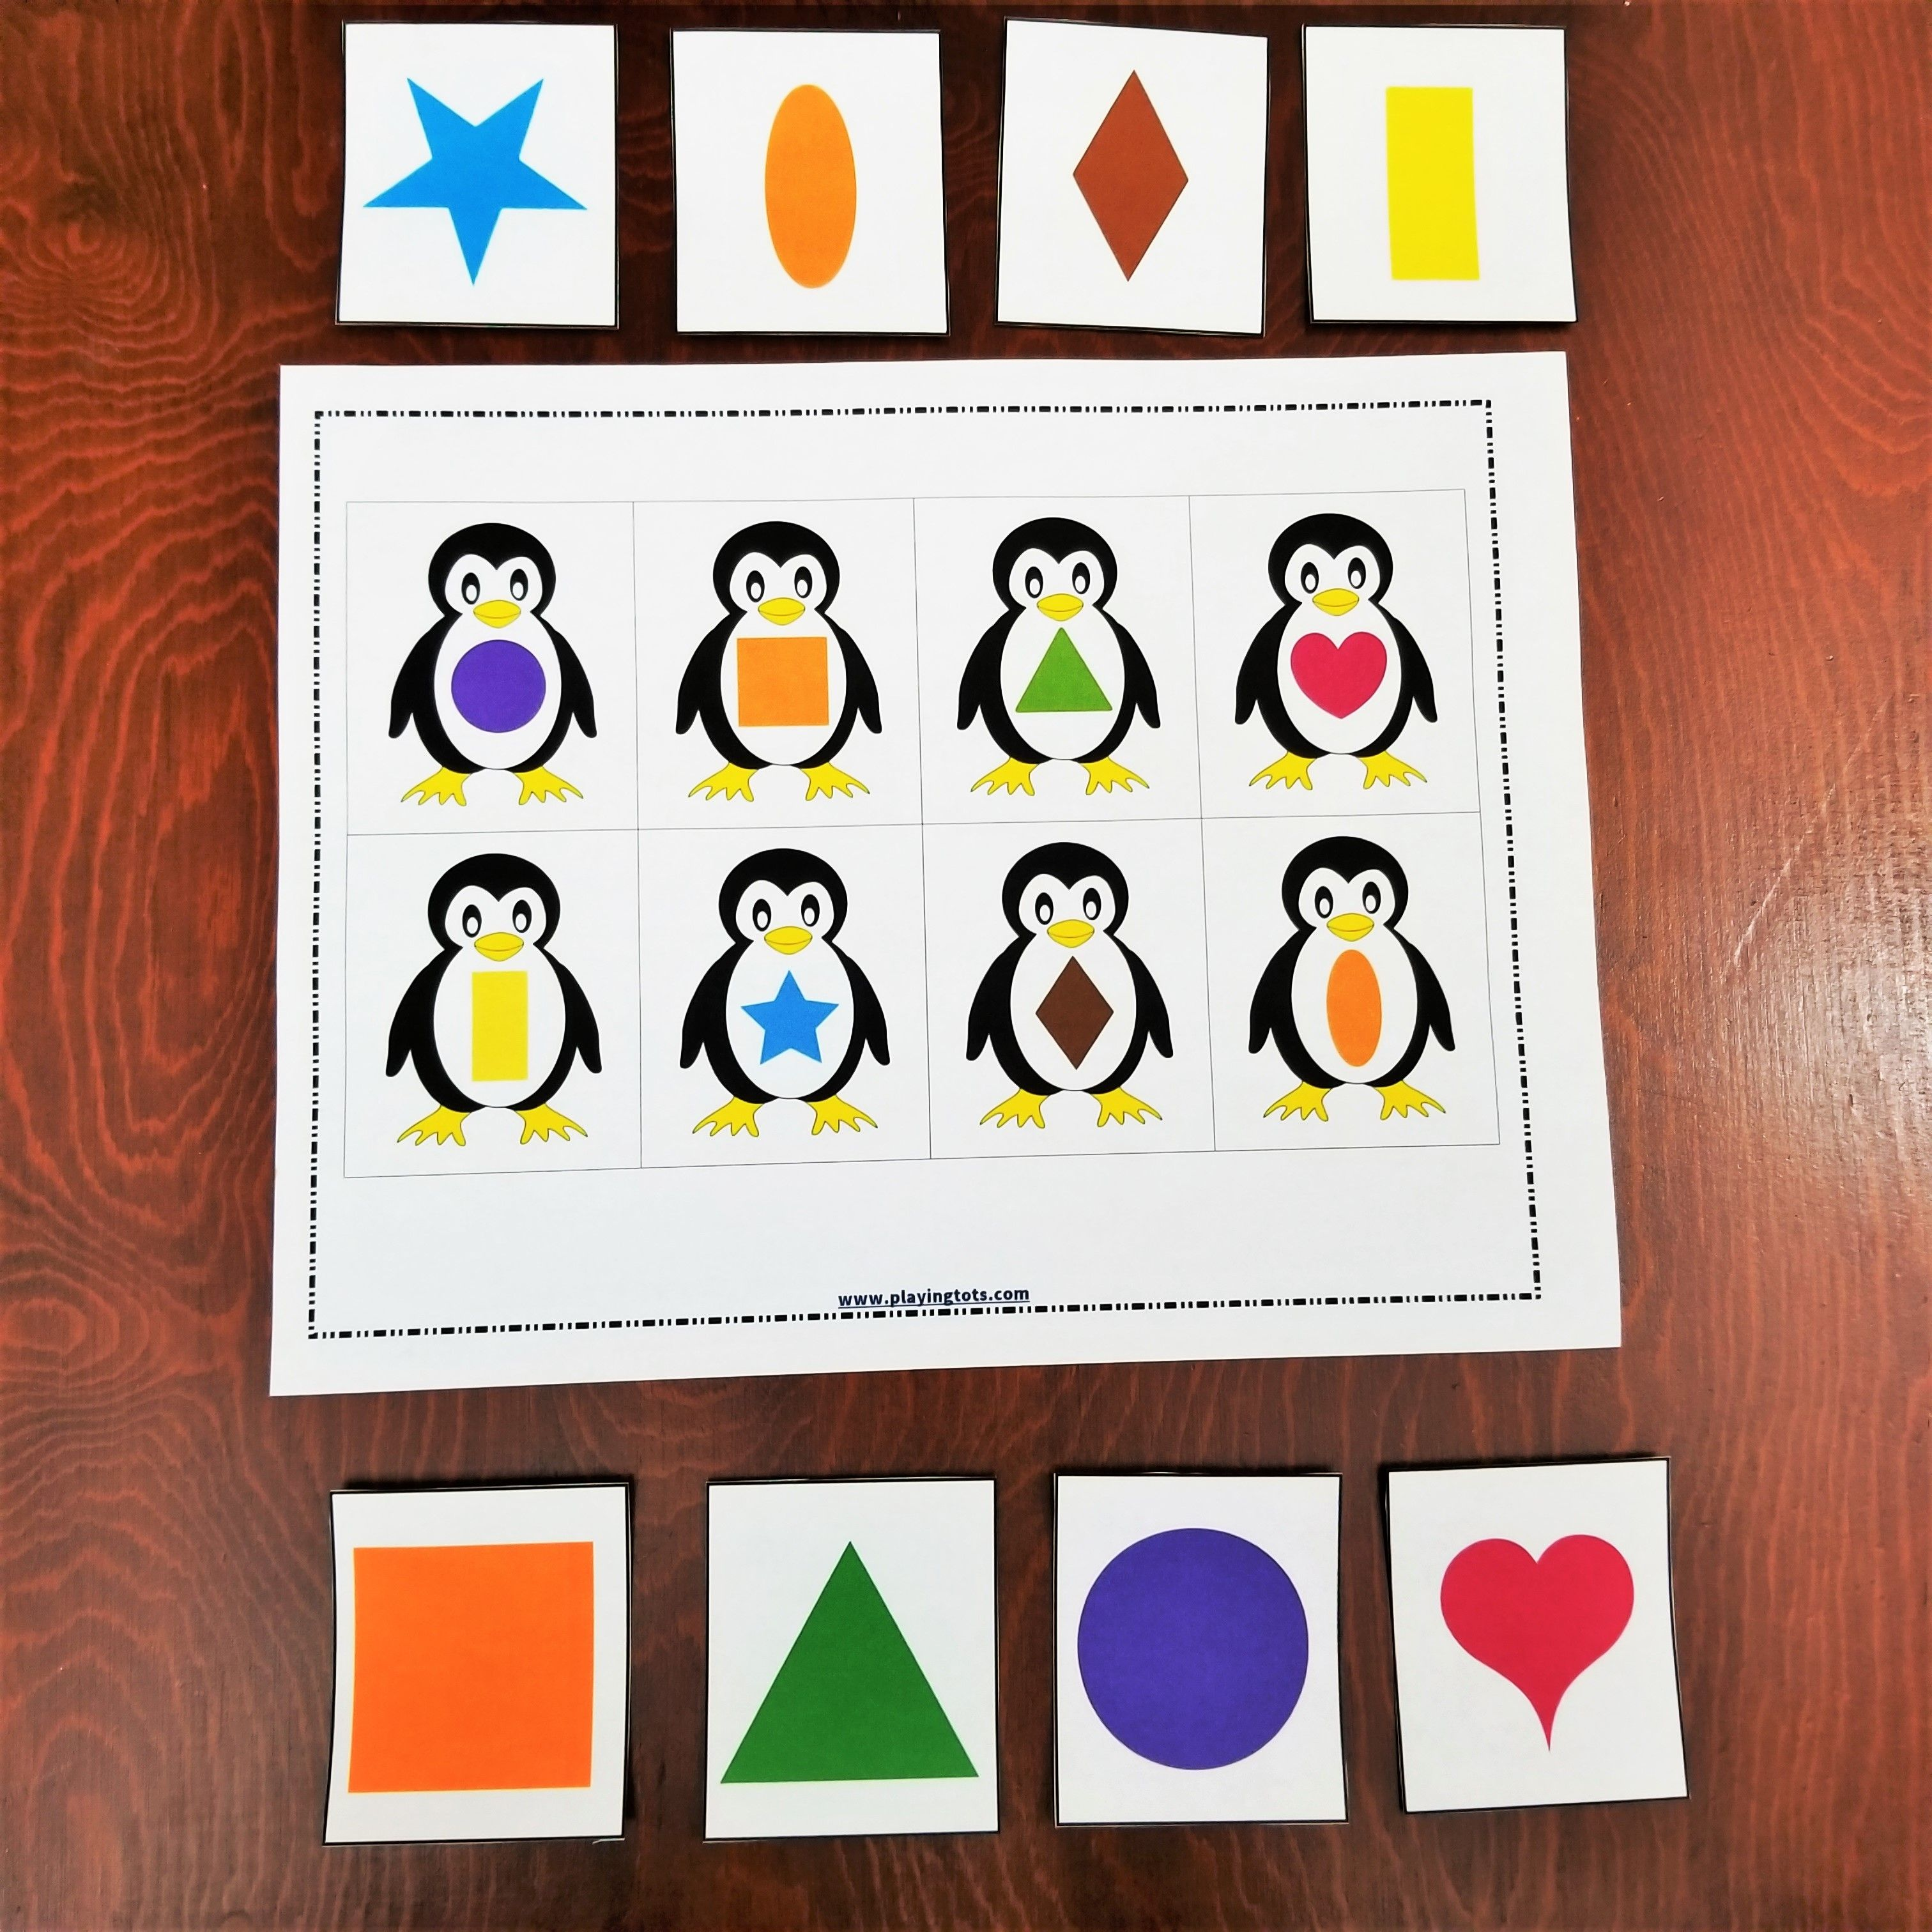 Keywords Matching Activities Shapes Penguin Animals